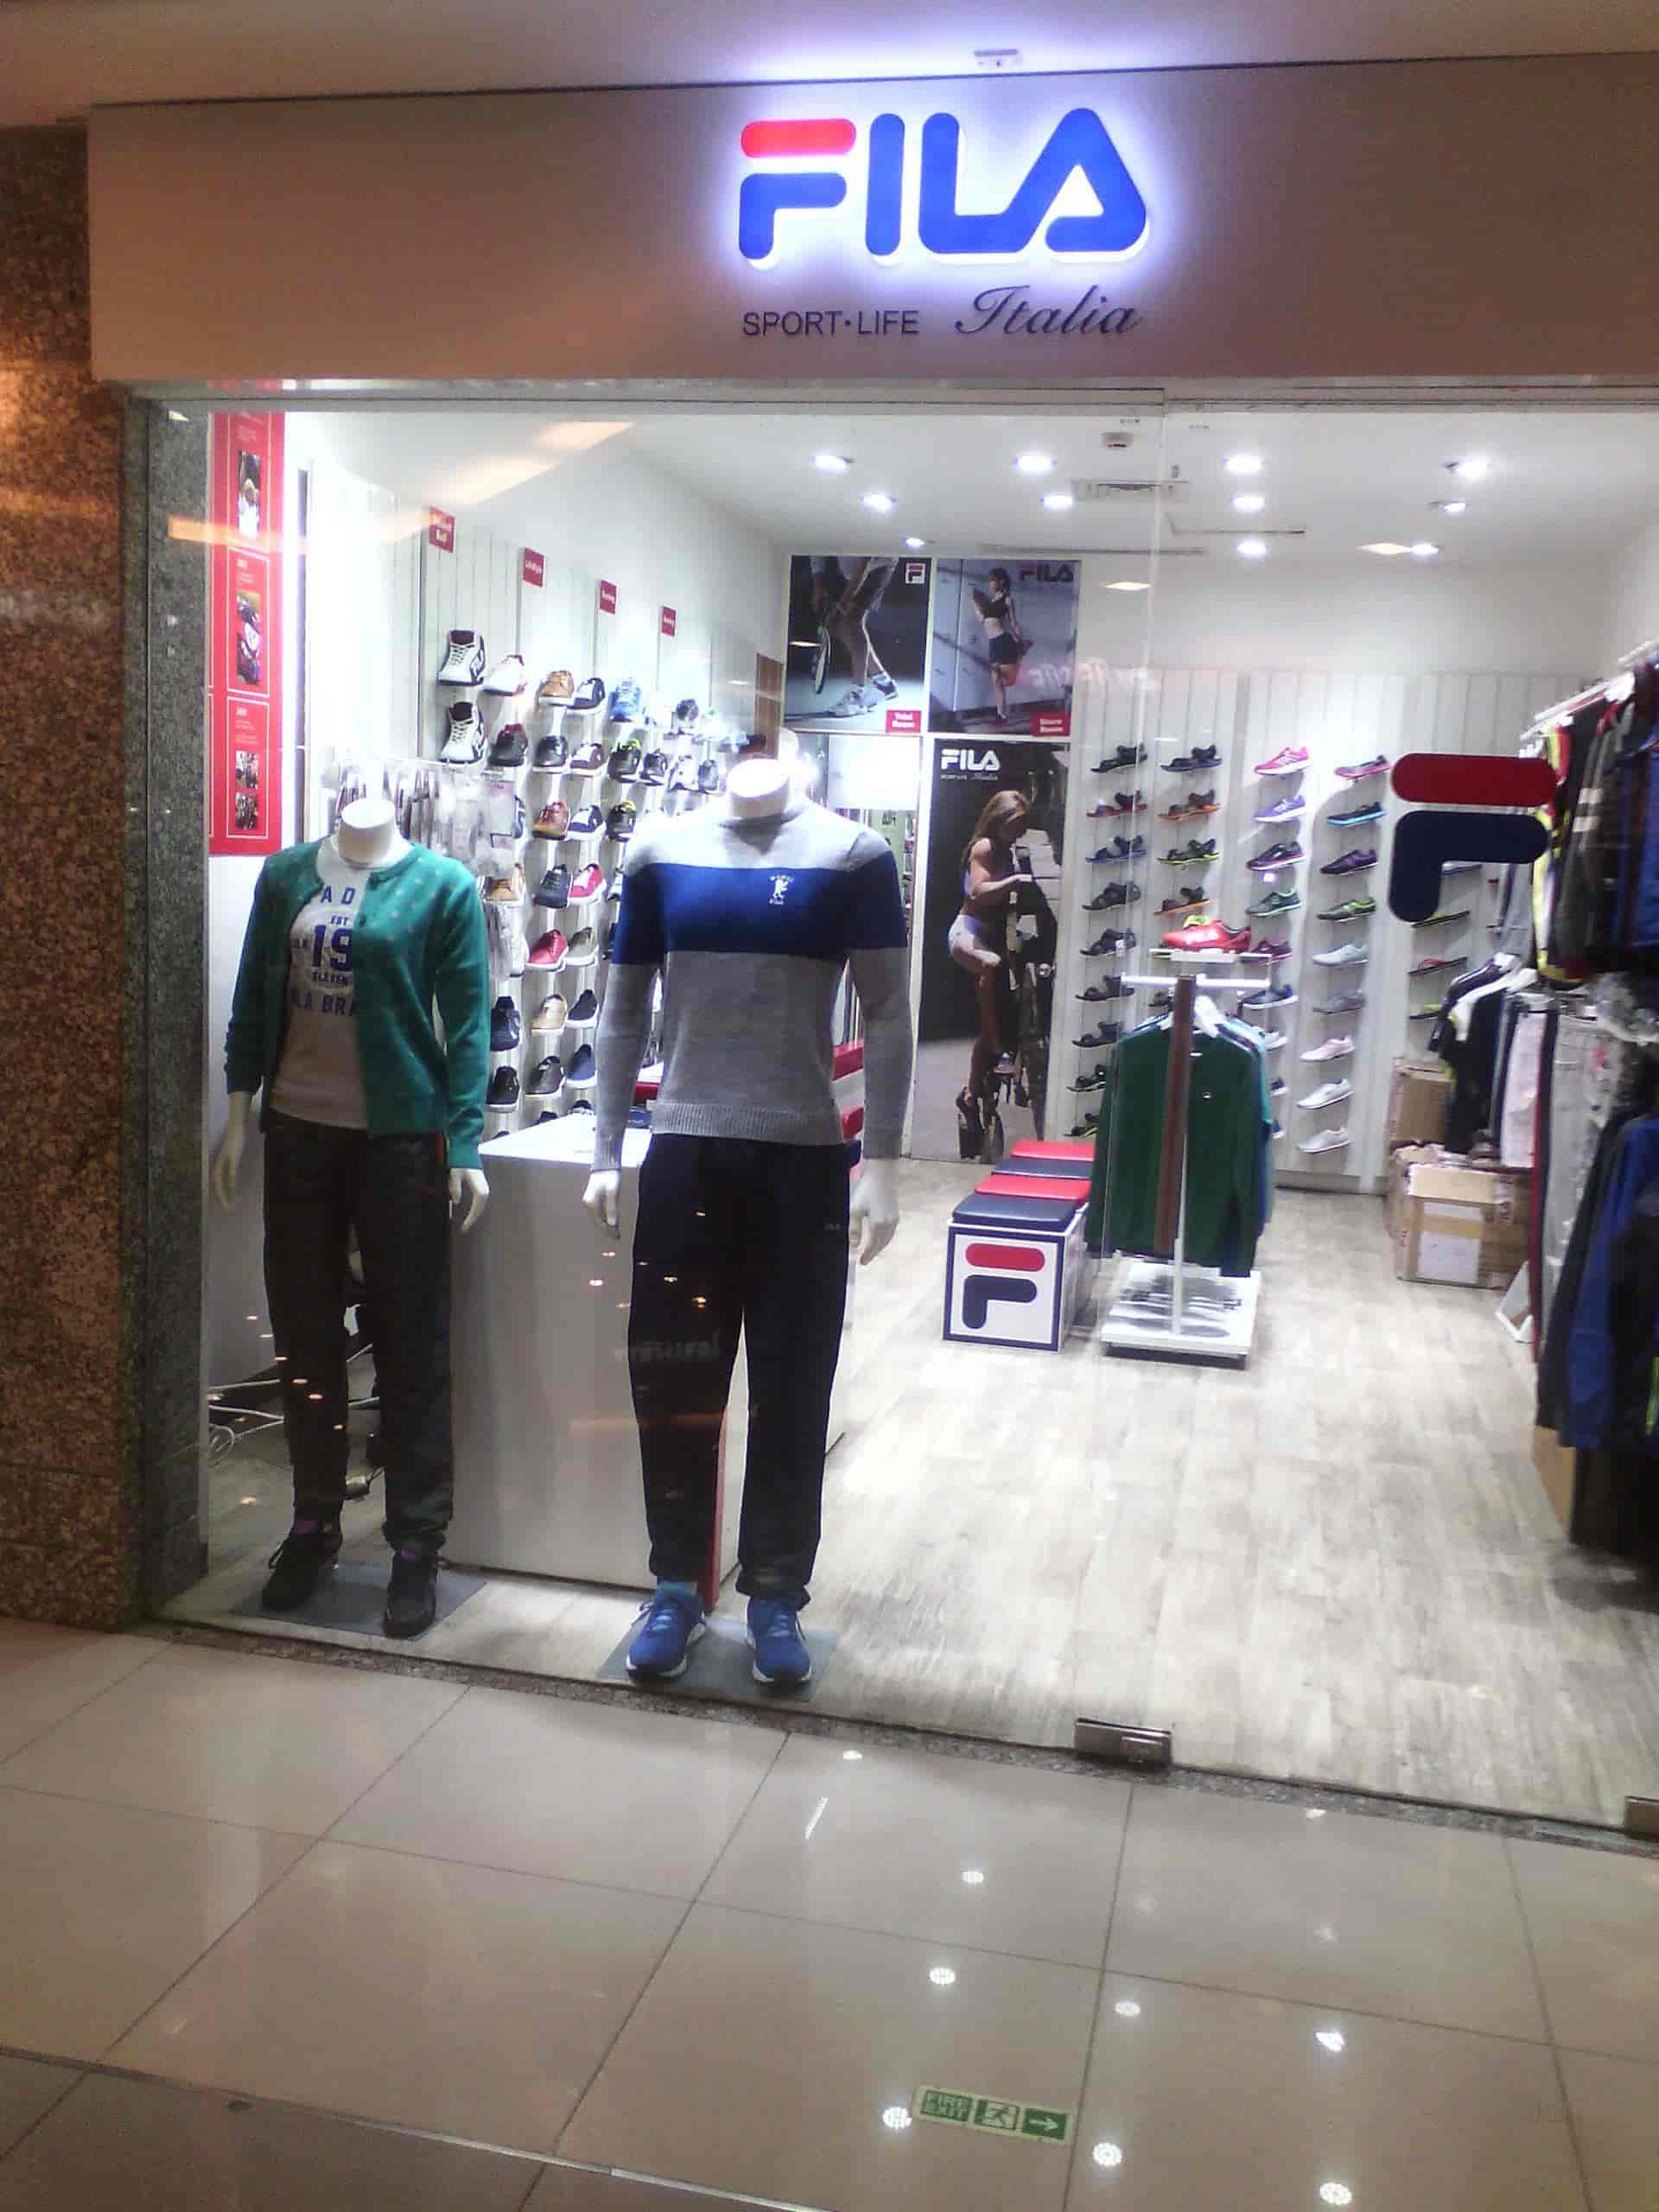 Front View of the Shop - Fila Store Photos f4eeb1cb5d7f